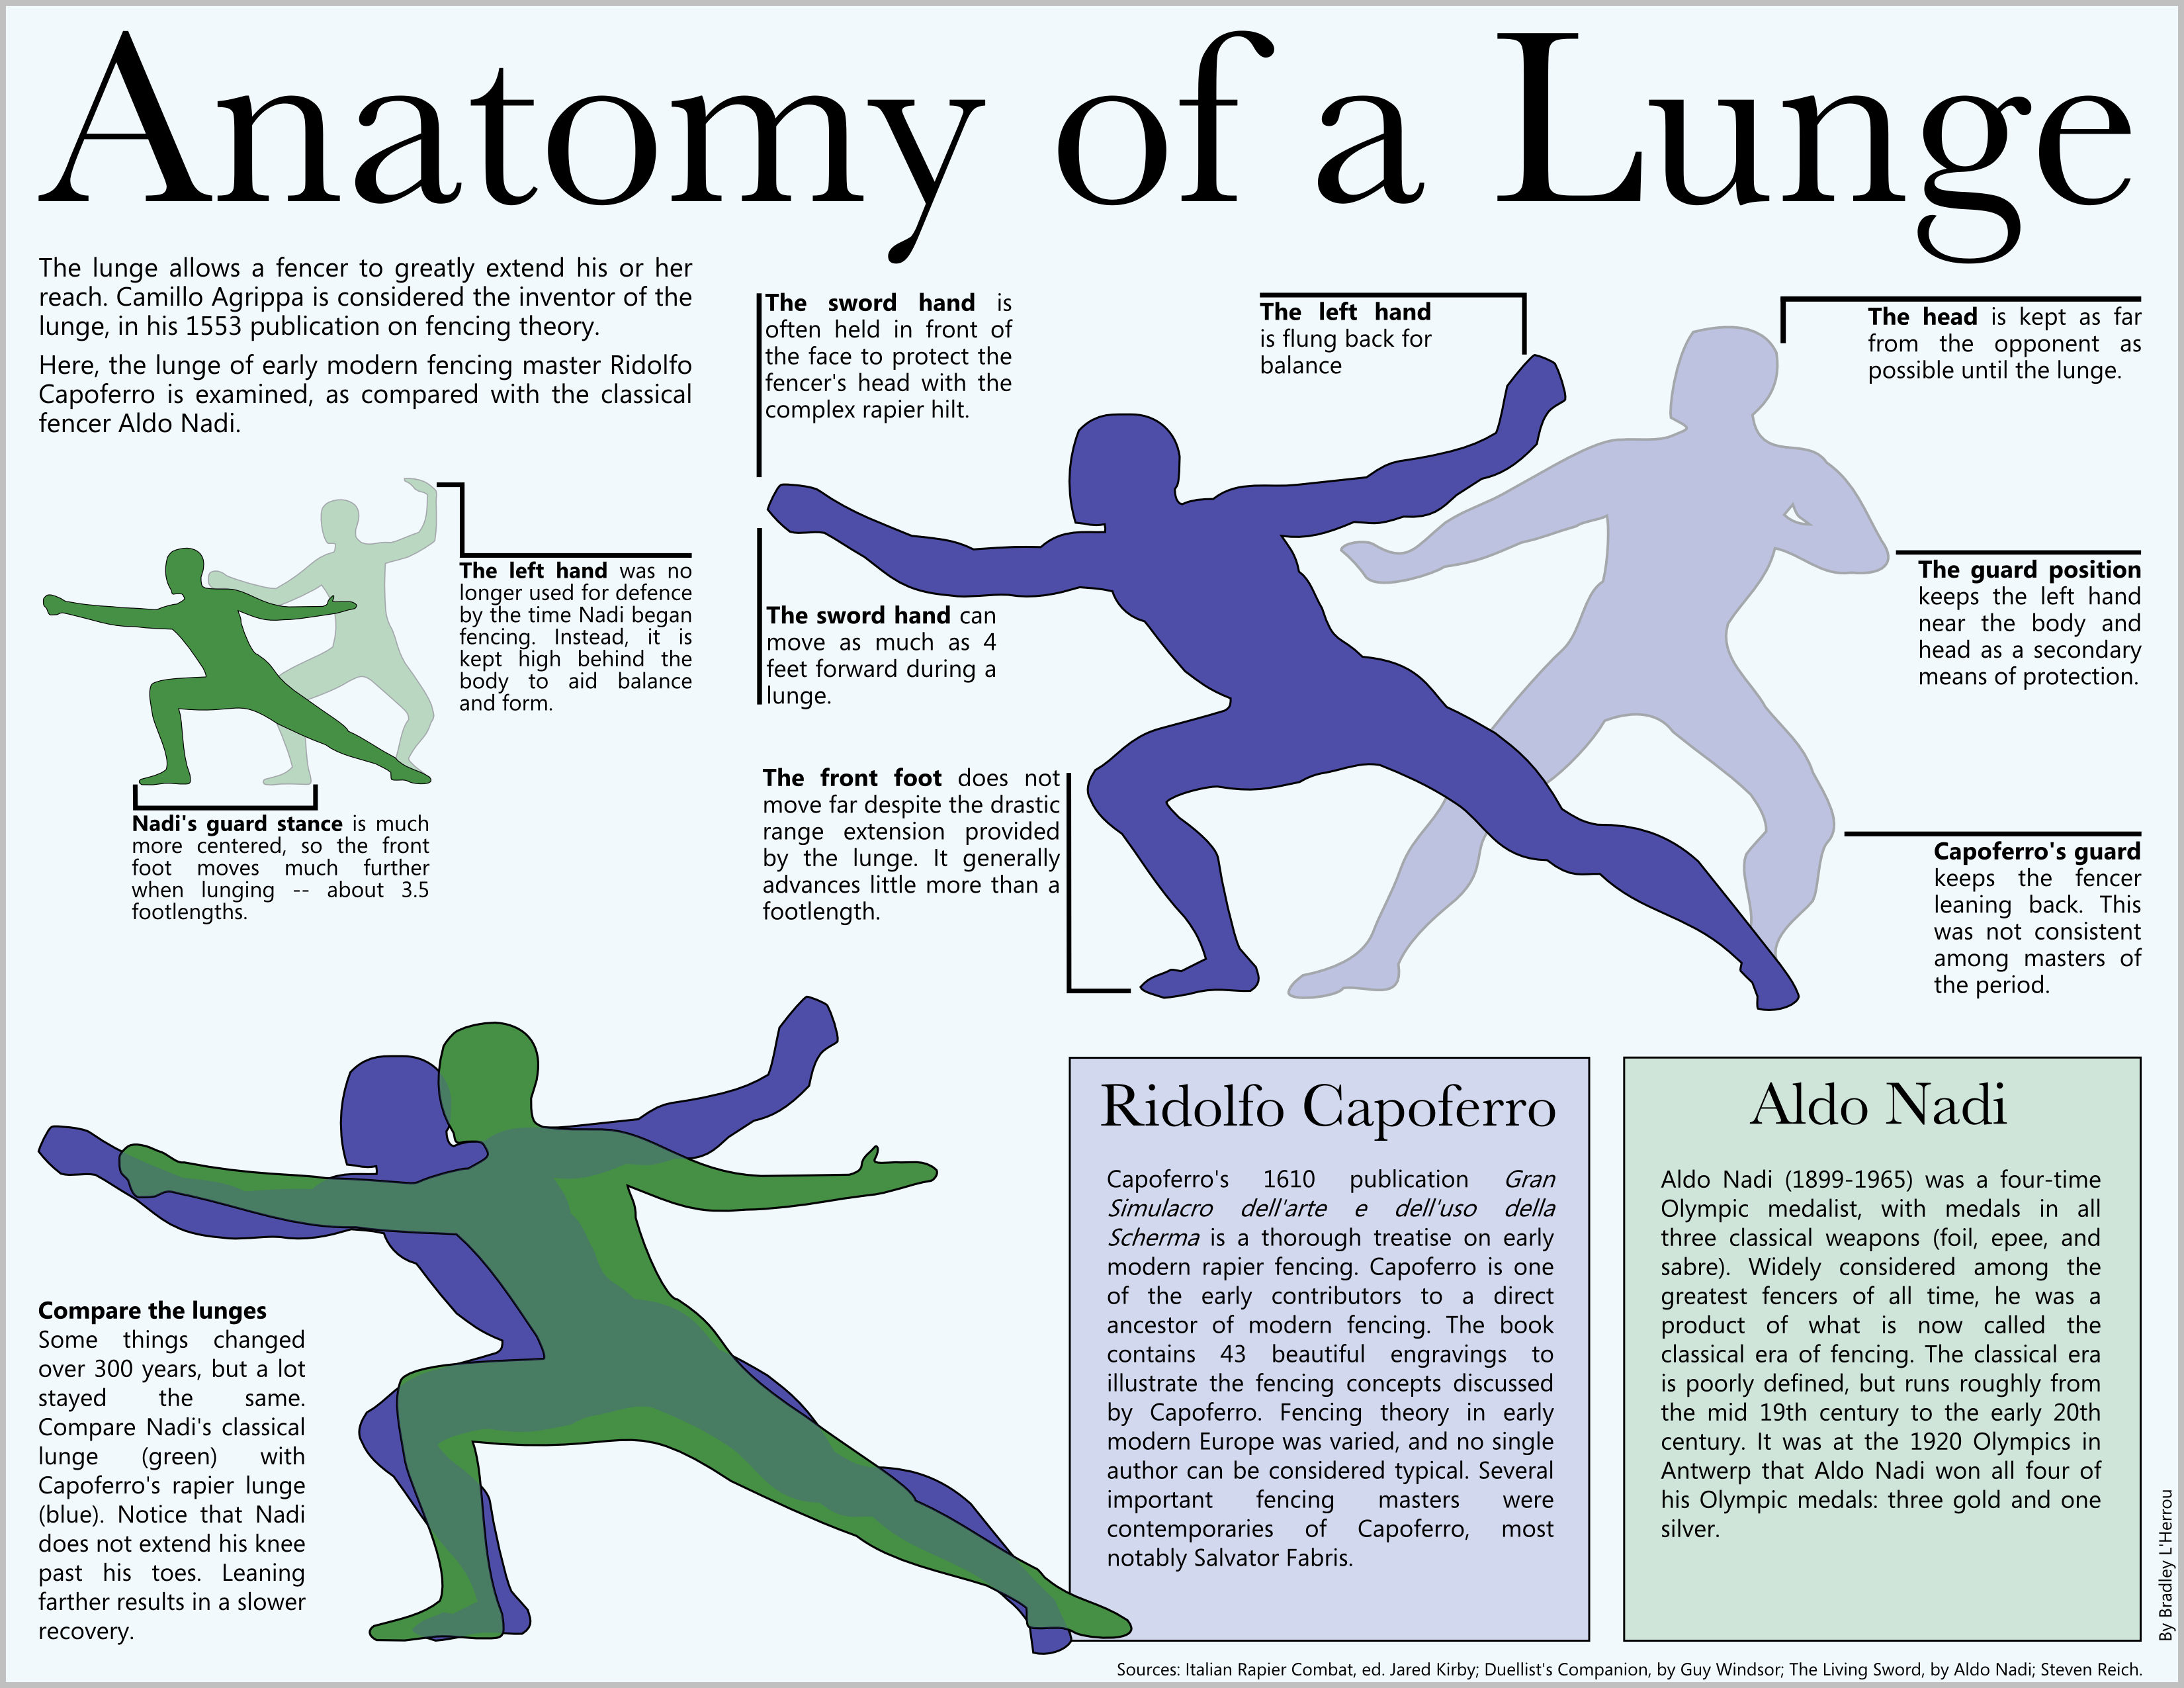 anatomy-of-a-lunge.png (3301×2551)   Fencing dreams   Pinterest ...